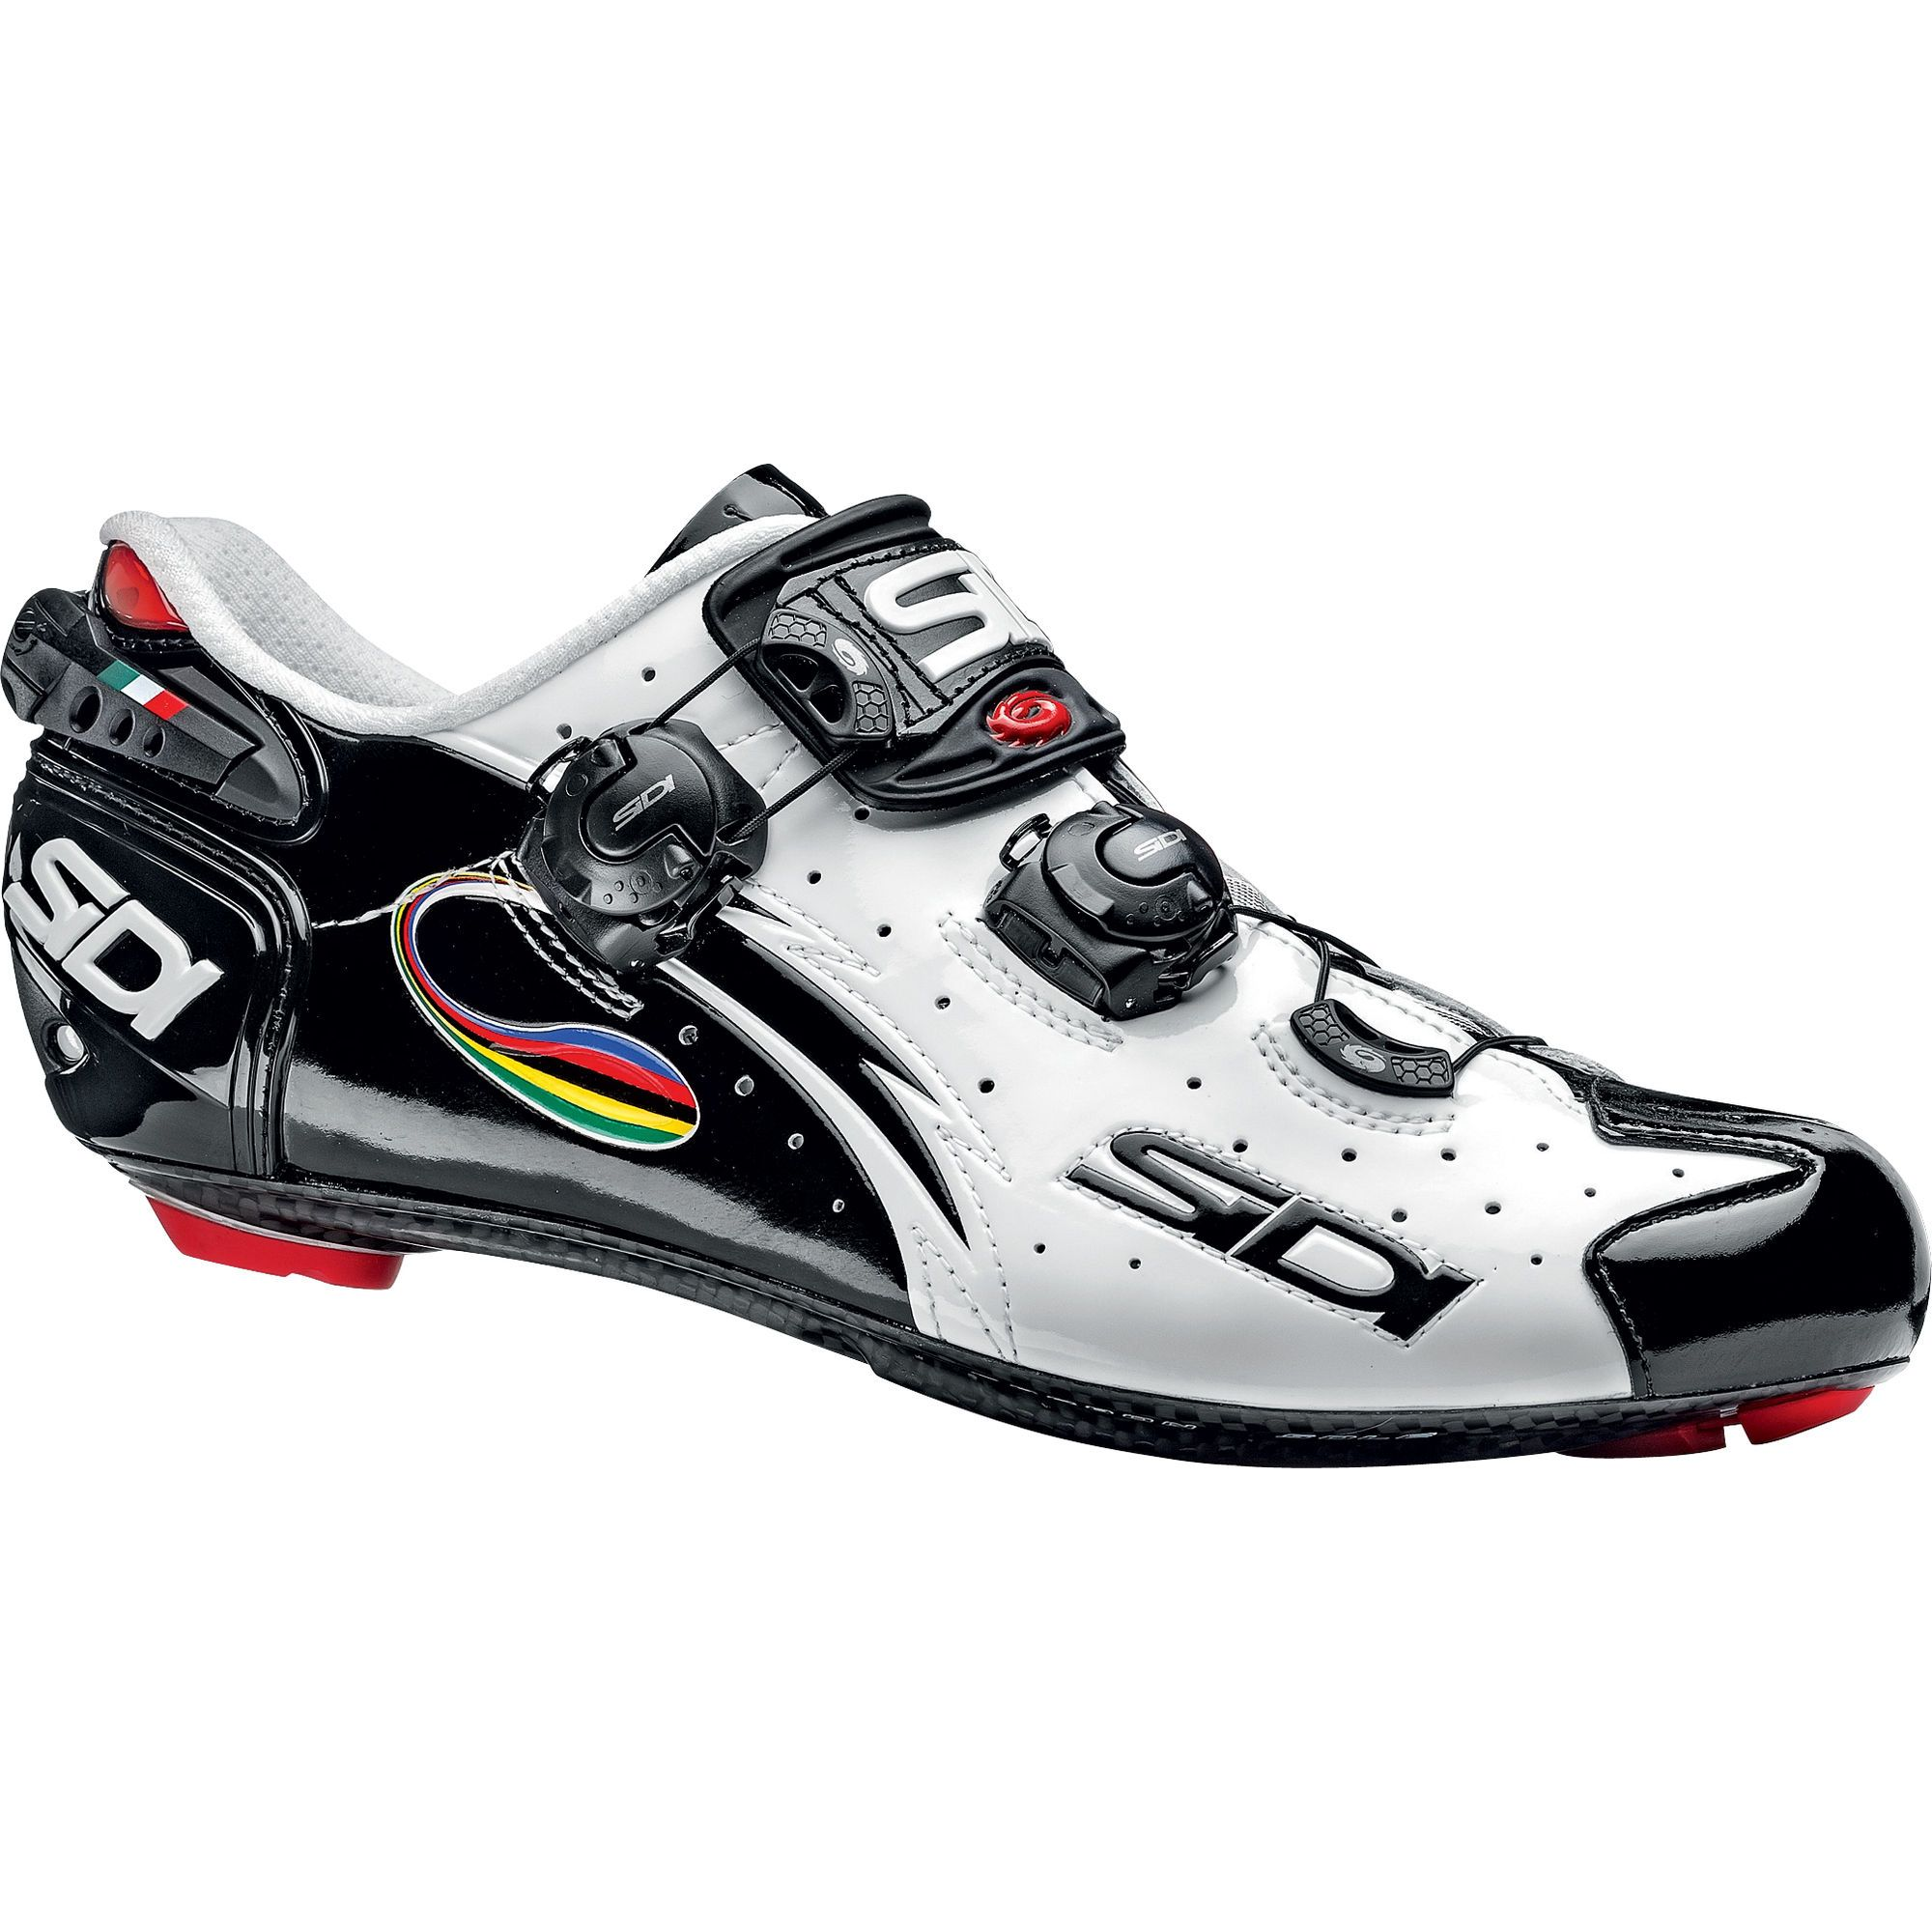 7W0O Sidi T-4 Air Carbon Composite Shoes Mens White Reduced Price Wholesale